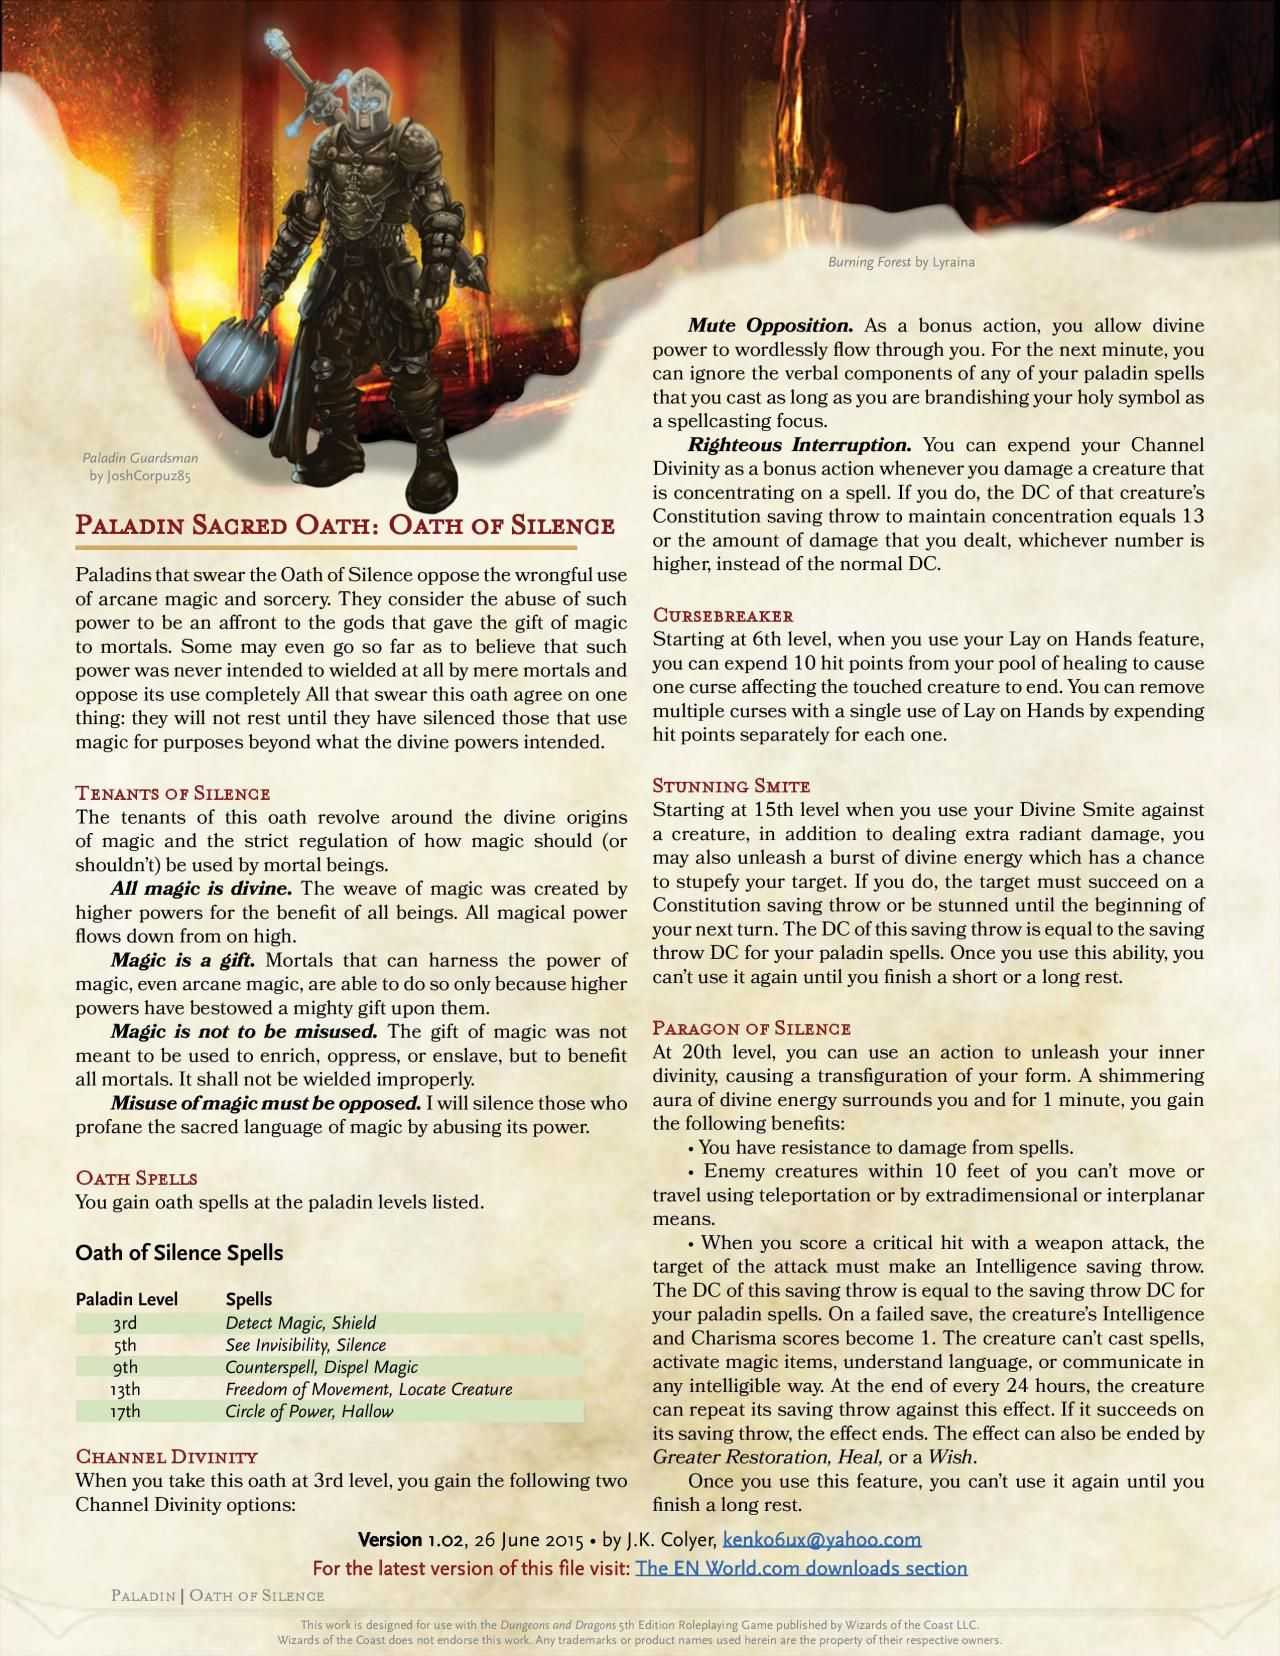 Pin by Kevin on D&D 5e Homebrew Class Archetypes in 2019 | Dnd 5e